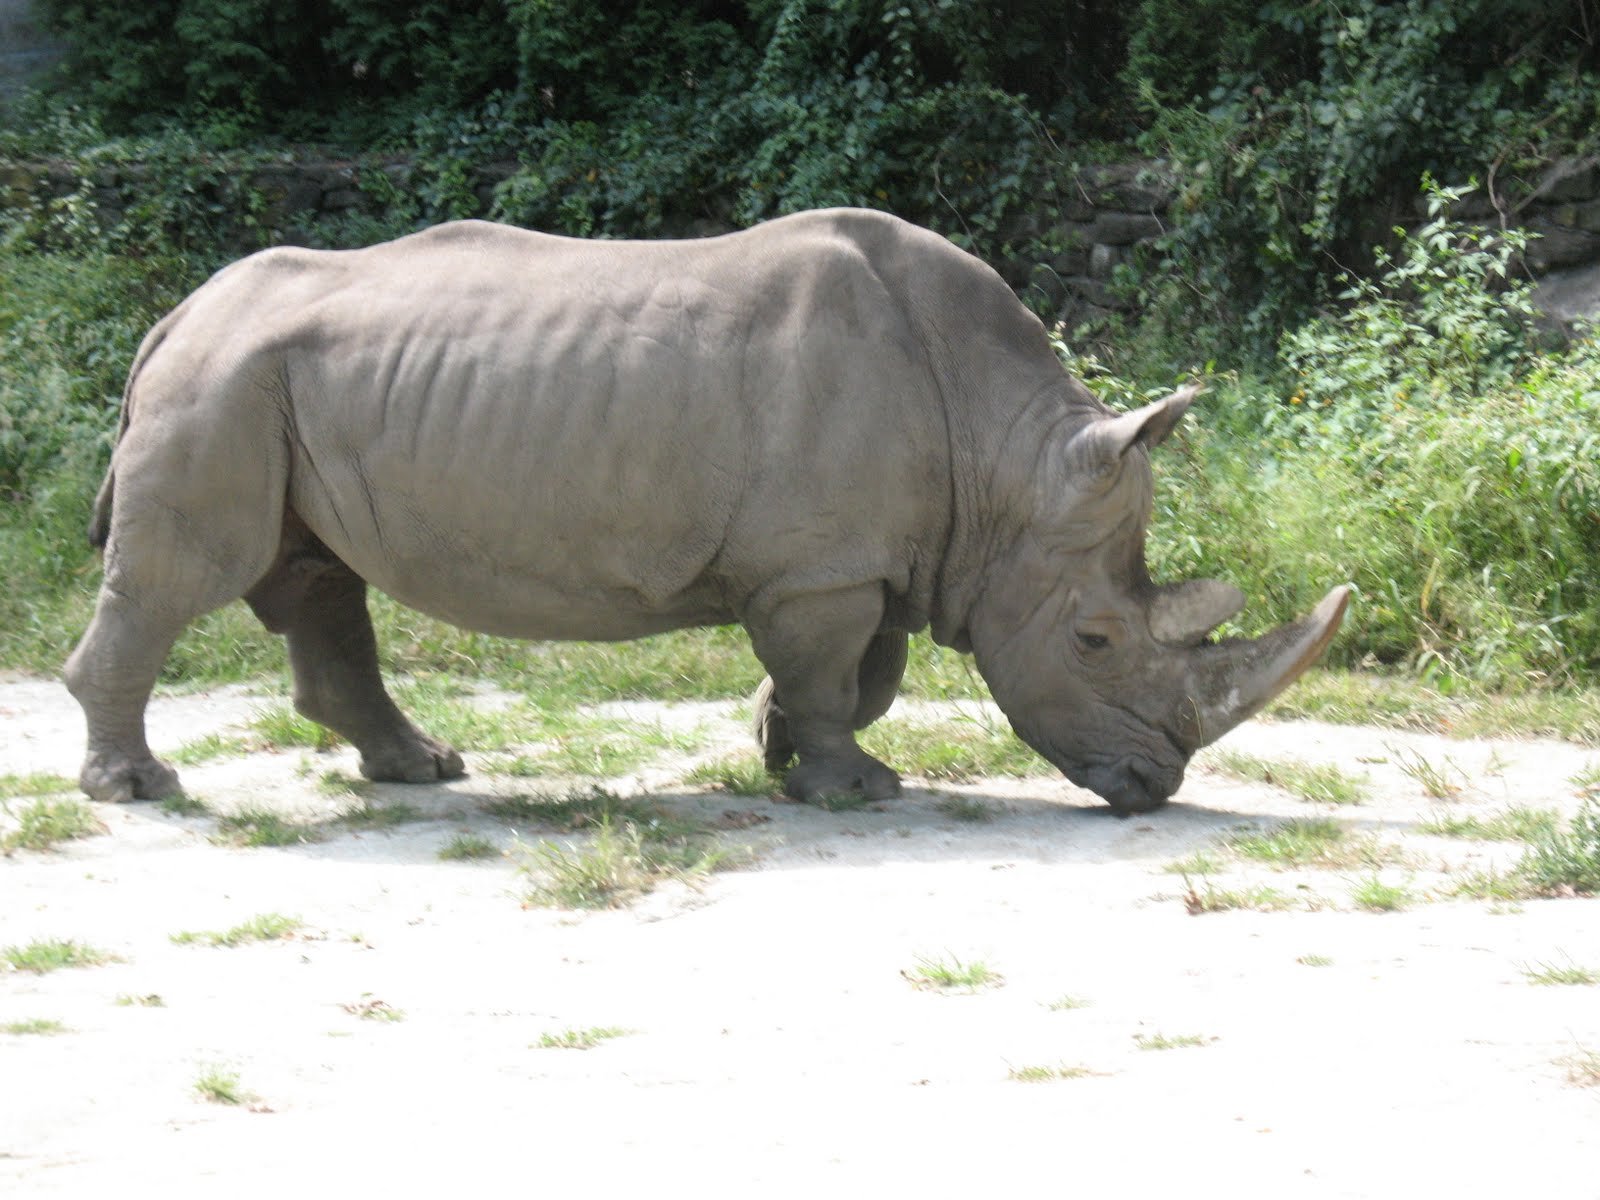 Best buy coupons code - Southwick Zoo Tiger In Southwick Zoo Rhino And Tiger In Southwick Zoo